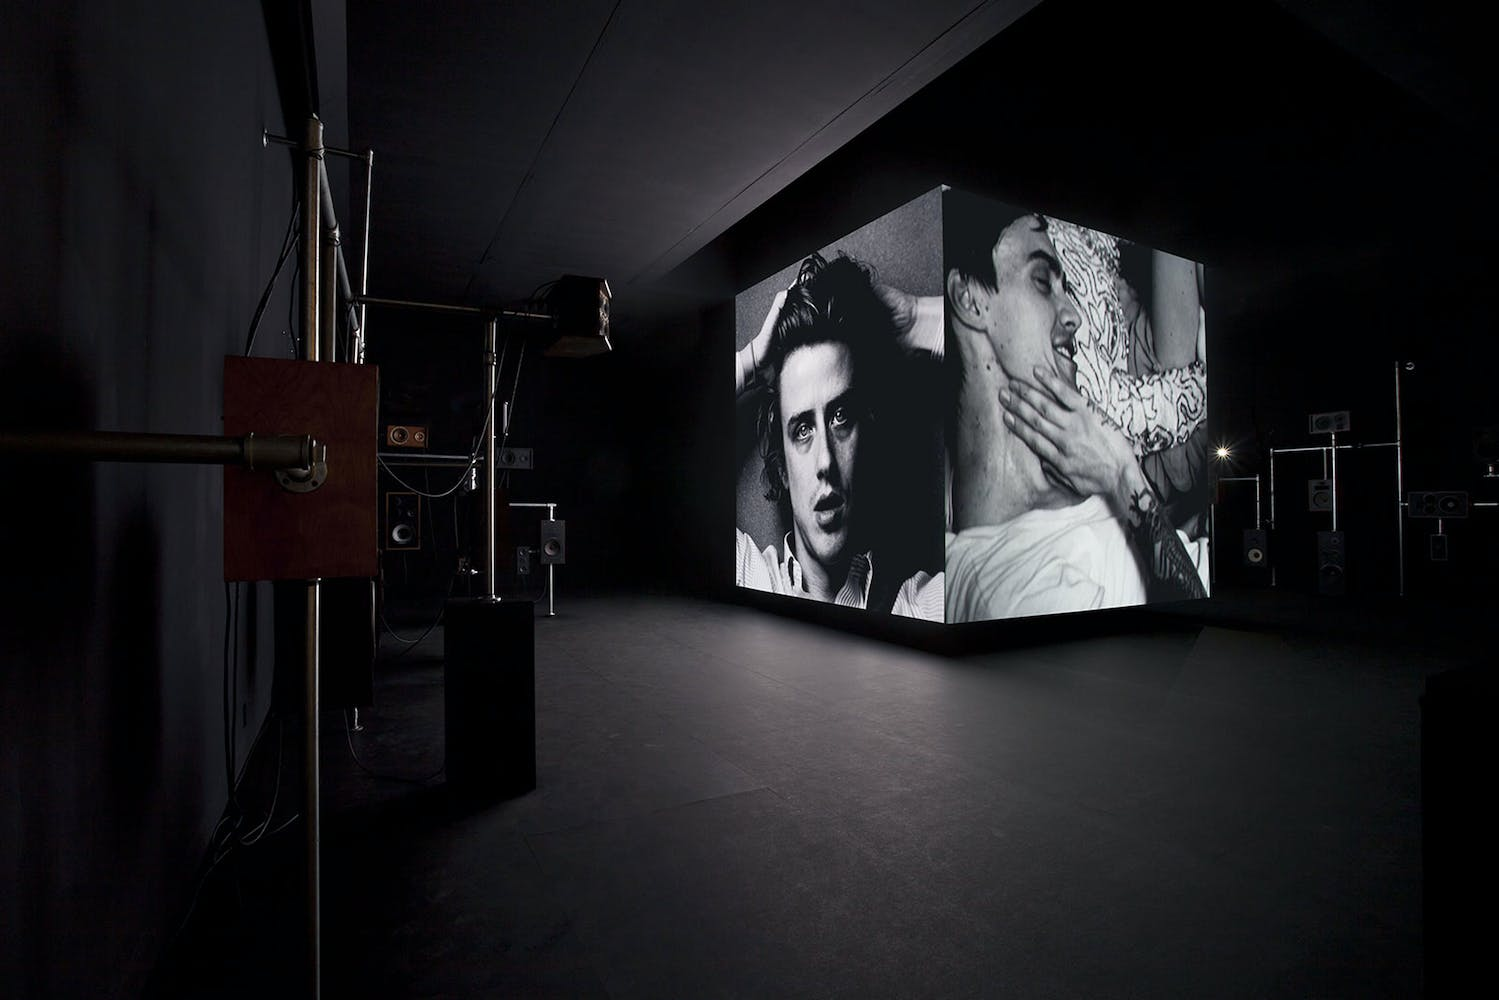 Image of cube structure in gallery with images projected on to the sides